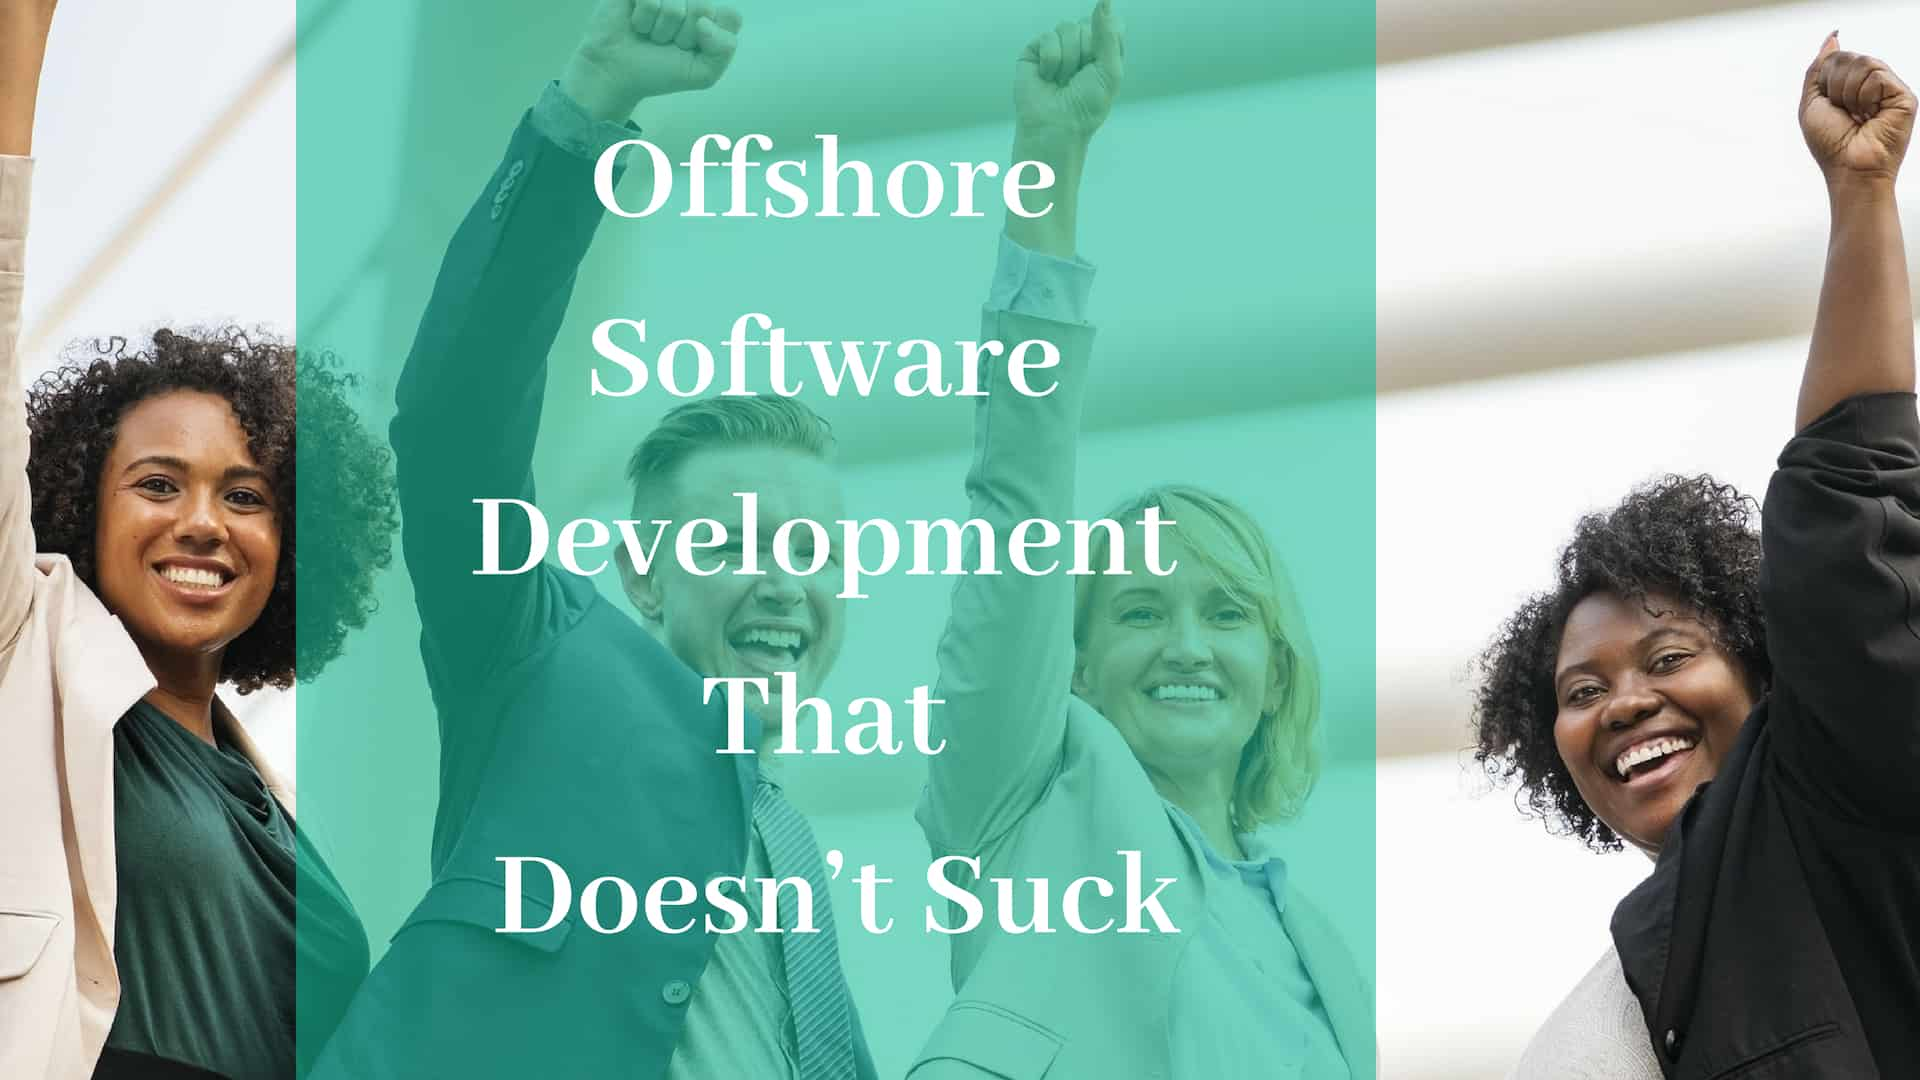 Offshore Software Development That Doesn't Suck